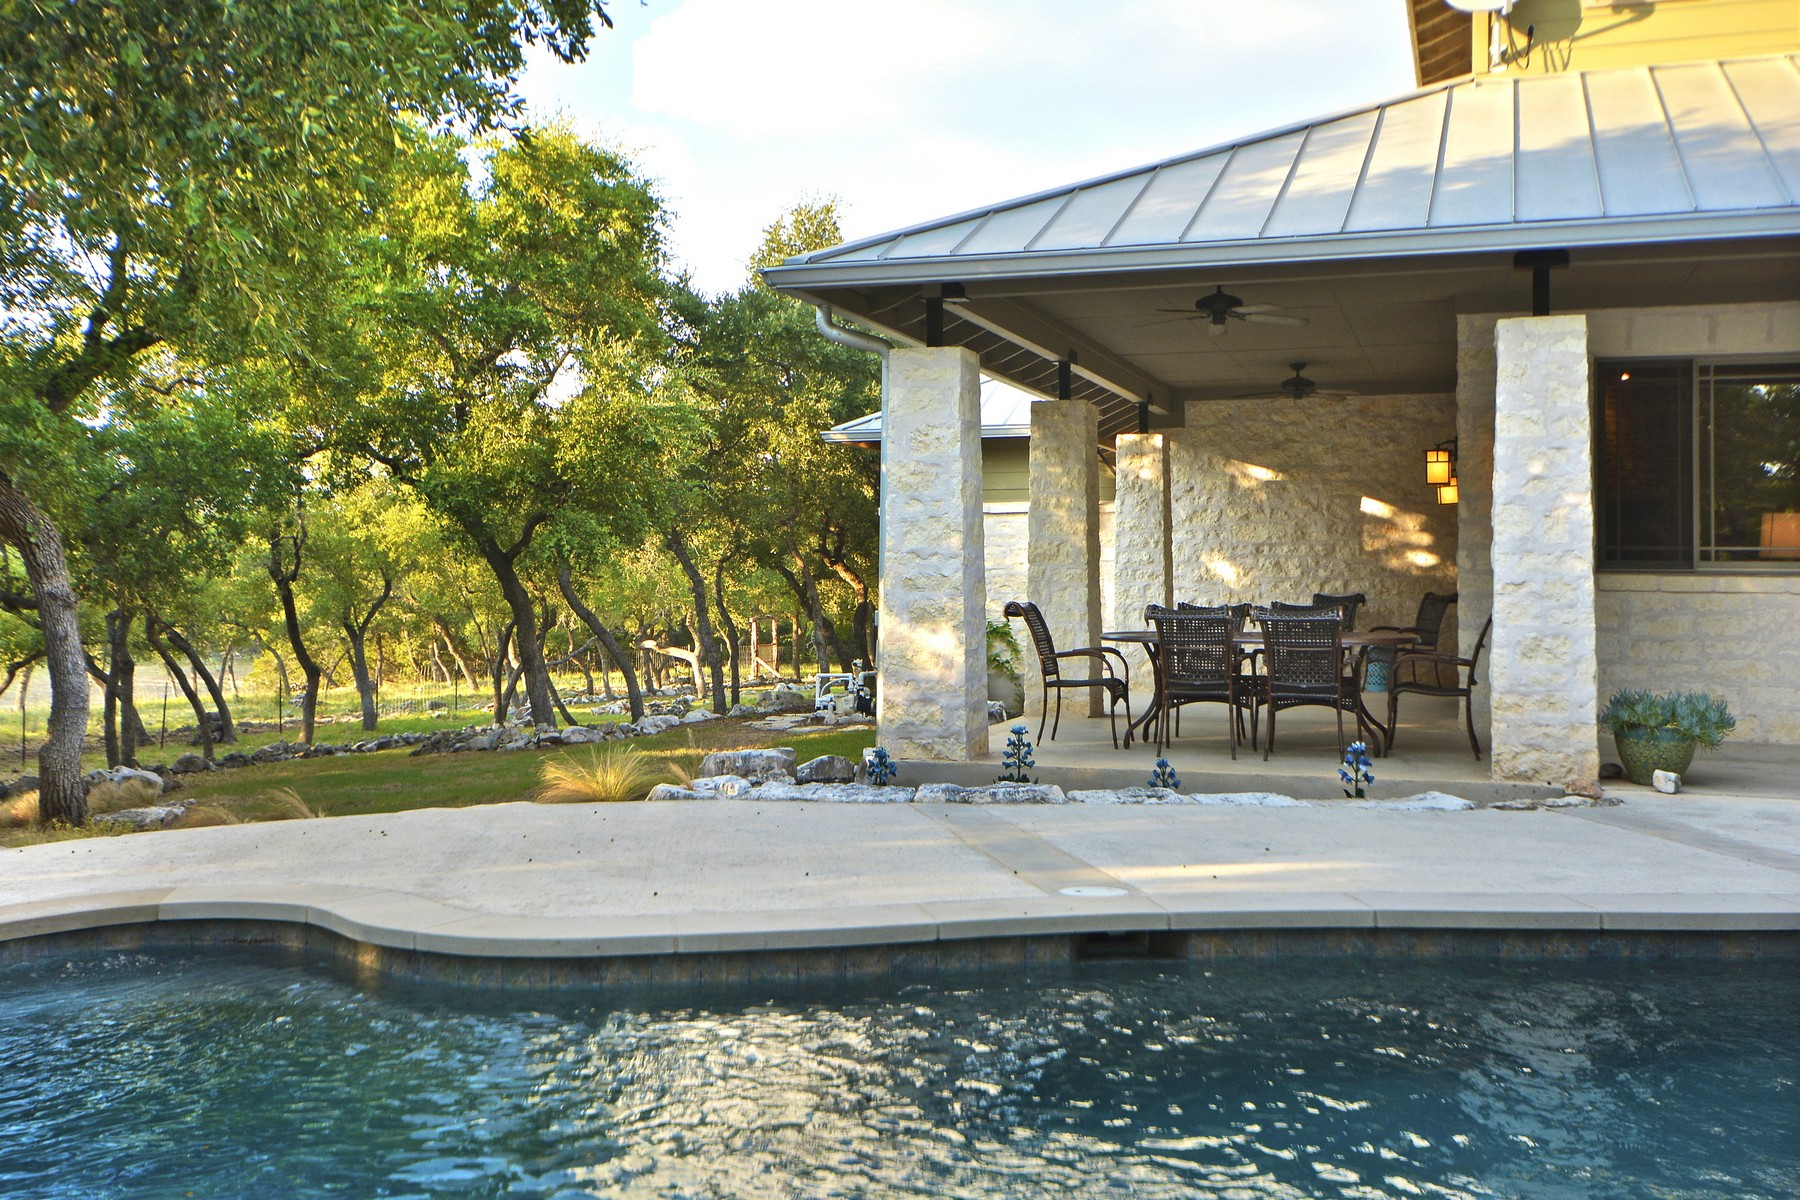 Additional photo for property listing at Wimberley Wonder on 10 acres 322 Trail Ridge Rd Wimberley, Texas 78676 United States